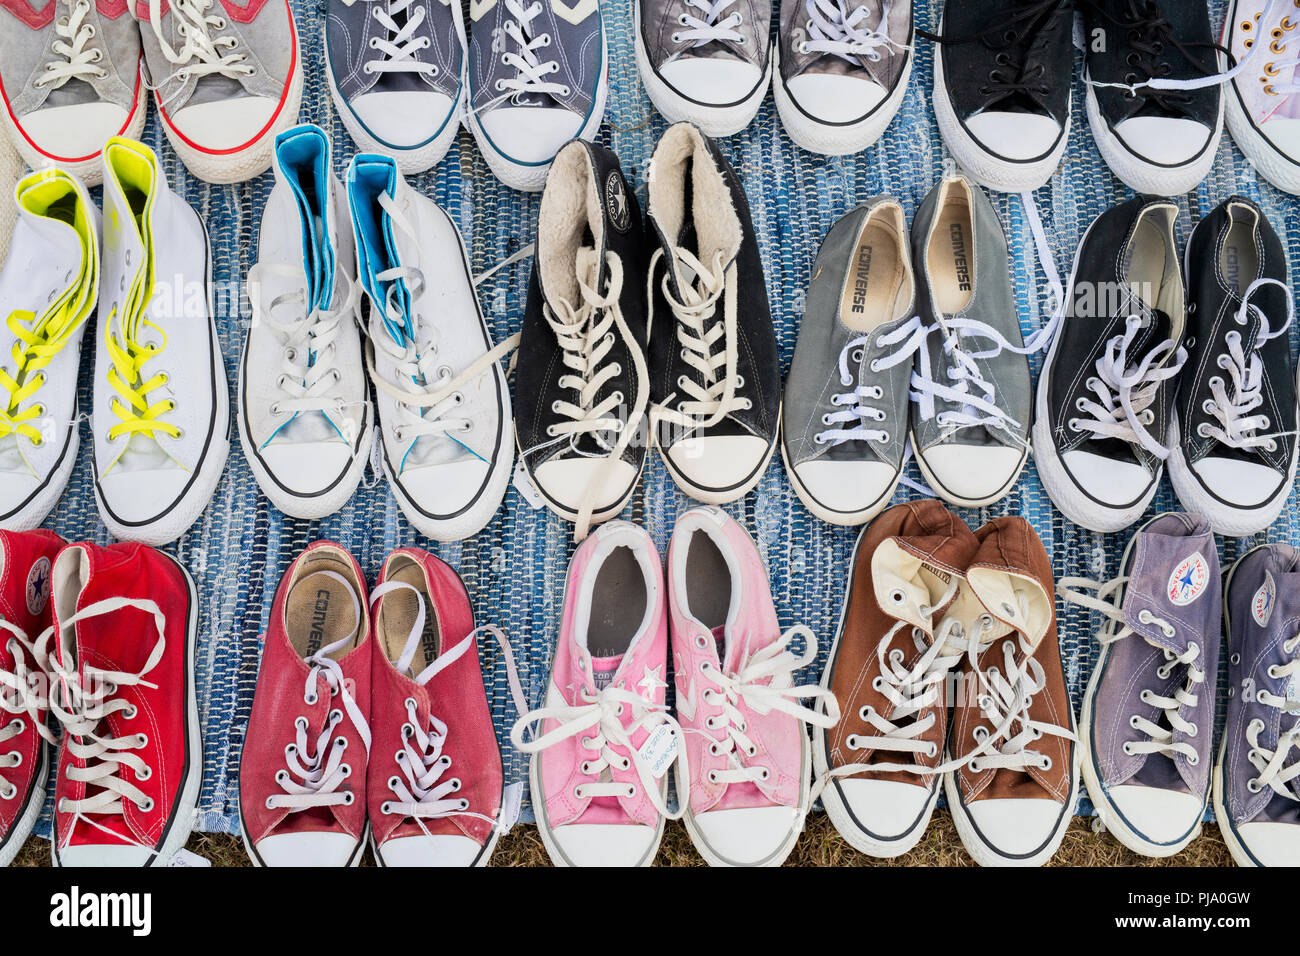 Converse trainers pattern. Converse trainers for sale on a stall at a vintage retro festival. UK - Stock Image